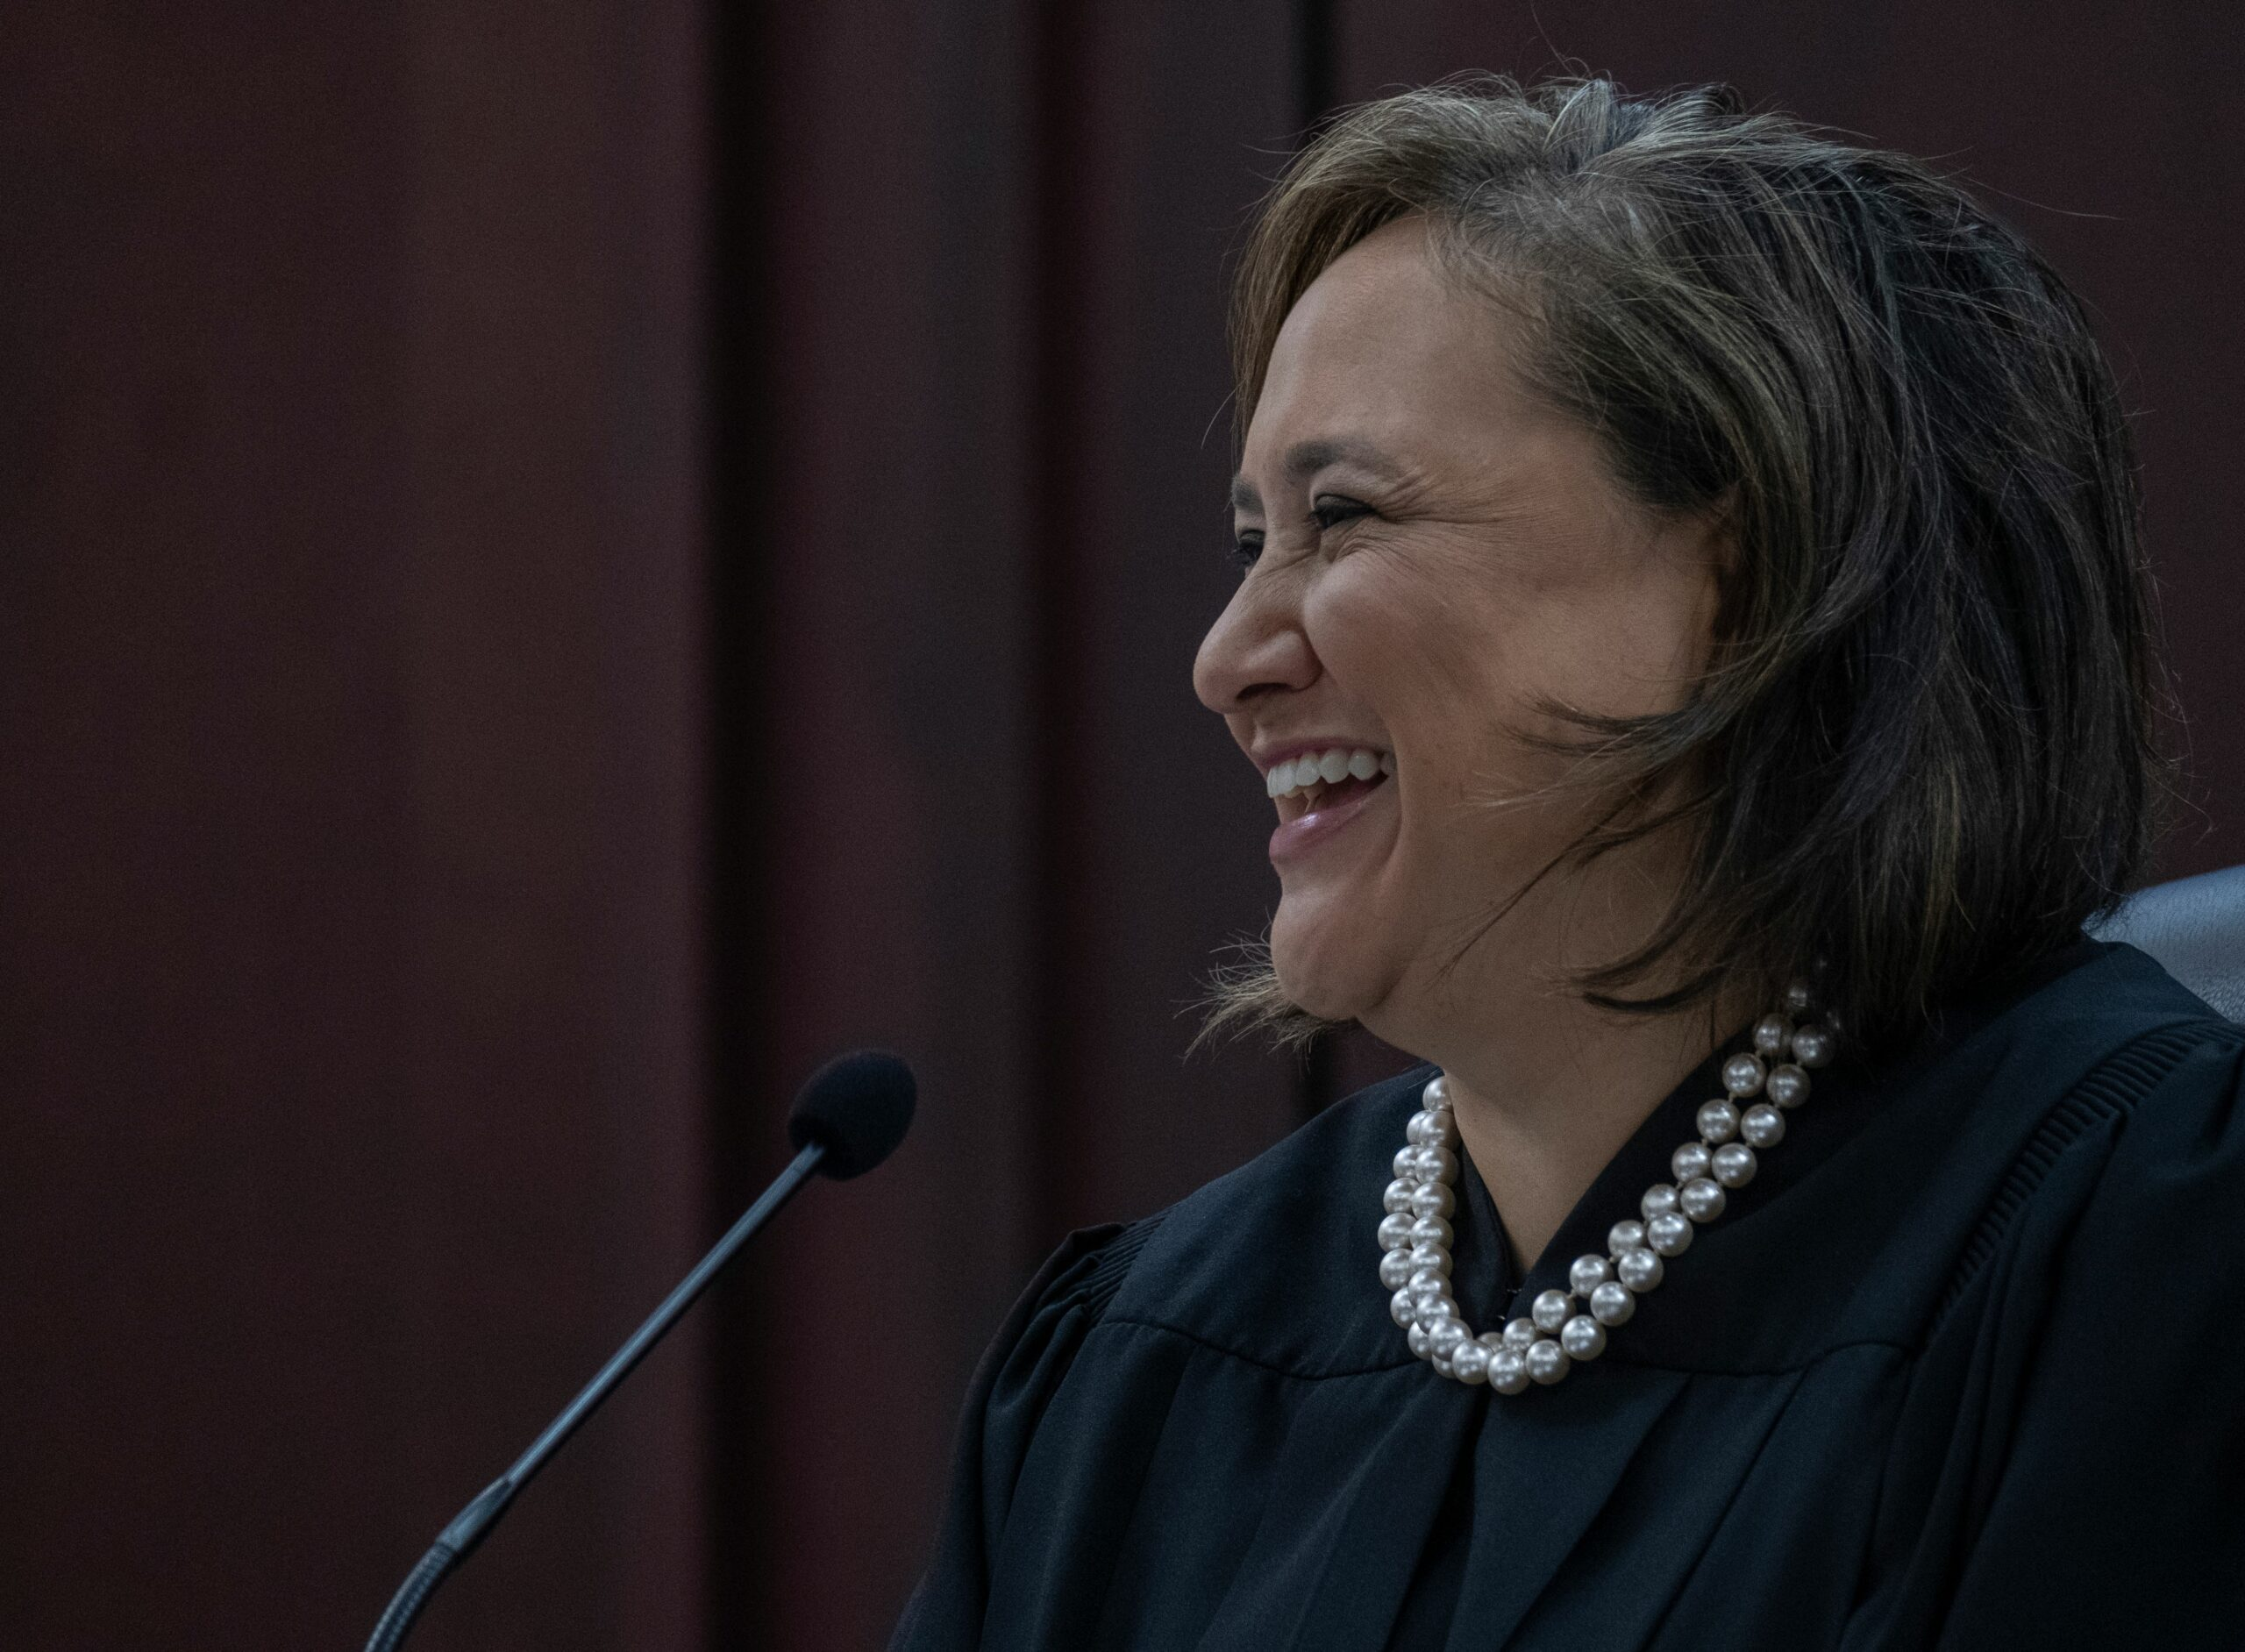 Nashville Judge Ana Escobar smiles during a session of the Cherished Hearts program to help survivors of human trafficking. (Photo: John Partipilo)